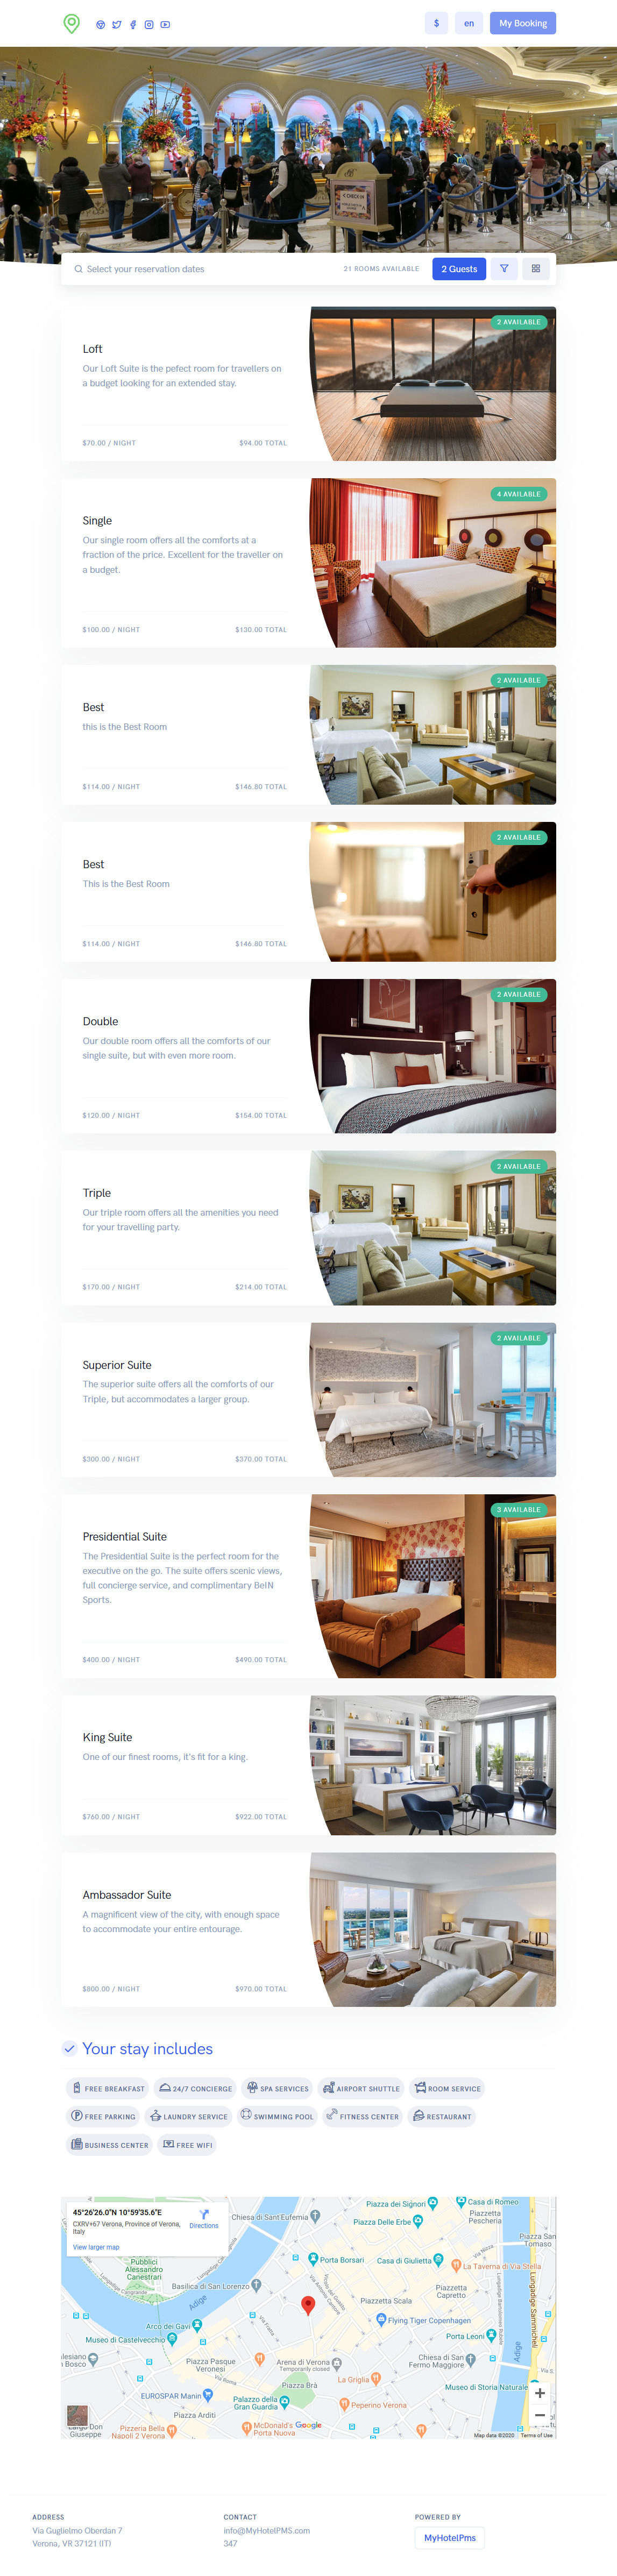 Hotel Website Design and Hosting by MyHotelPMS